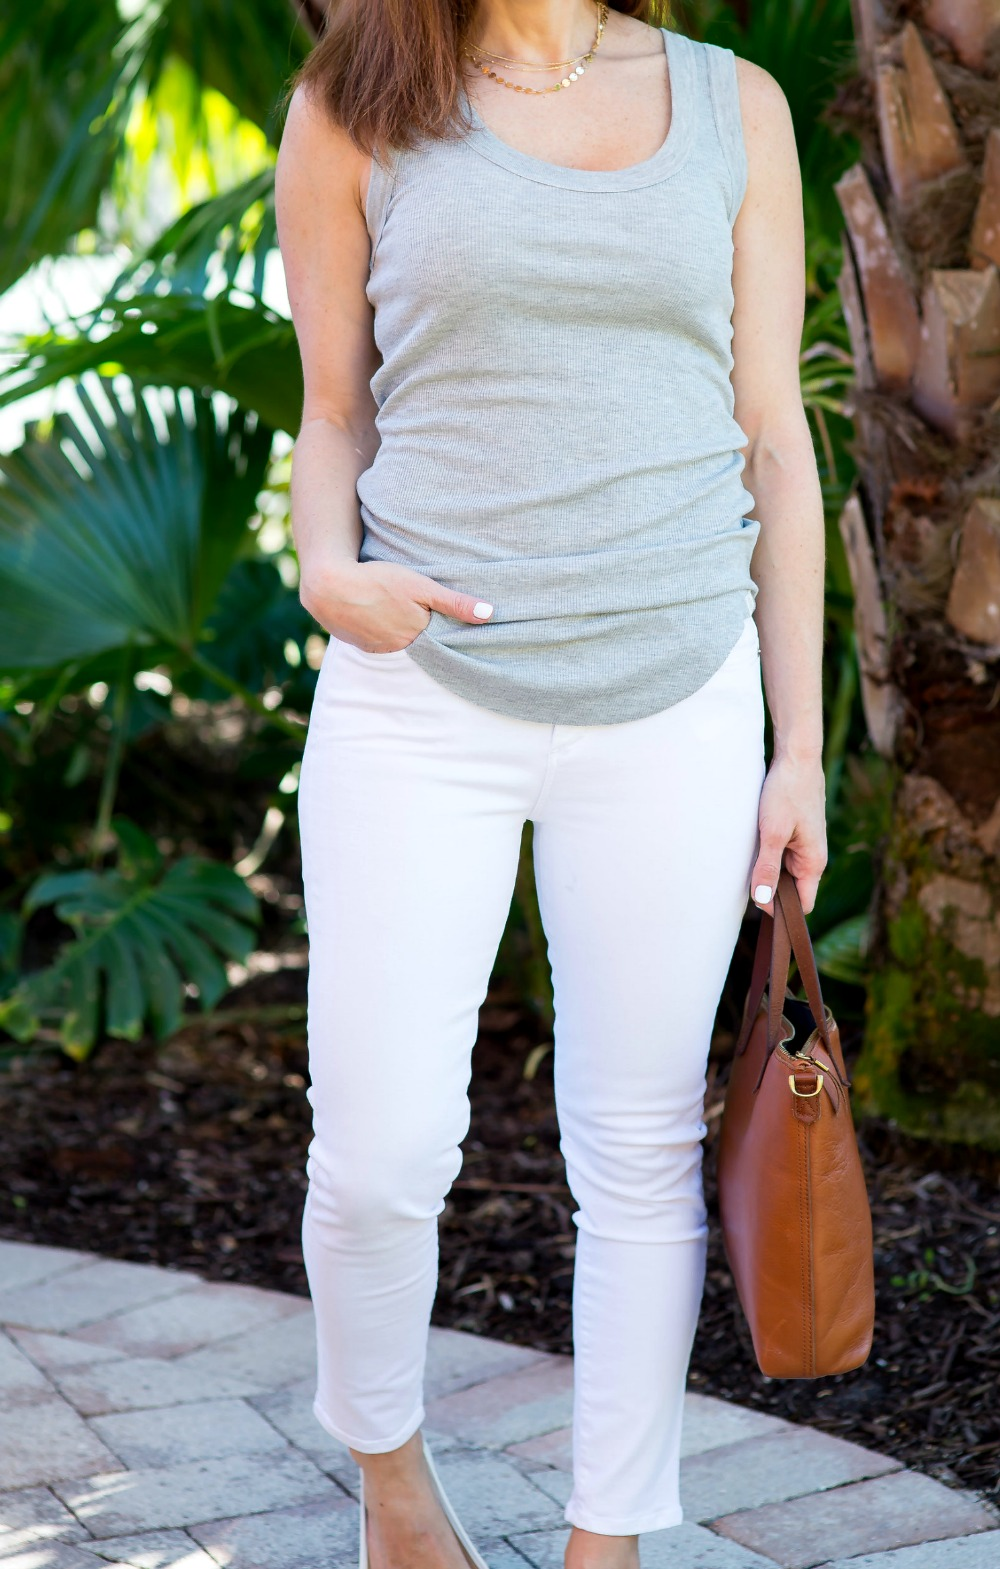 Effortless summer outfit idea - Spring Tank styled by popular Florida style blogger, The Modern Savvy